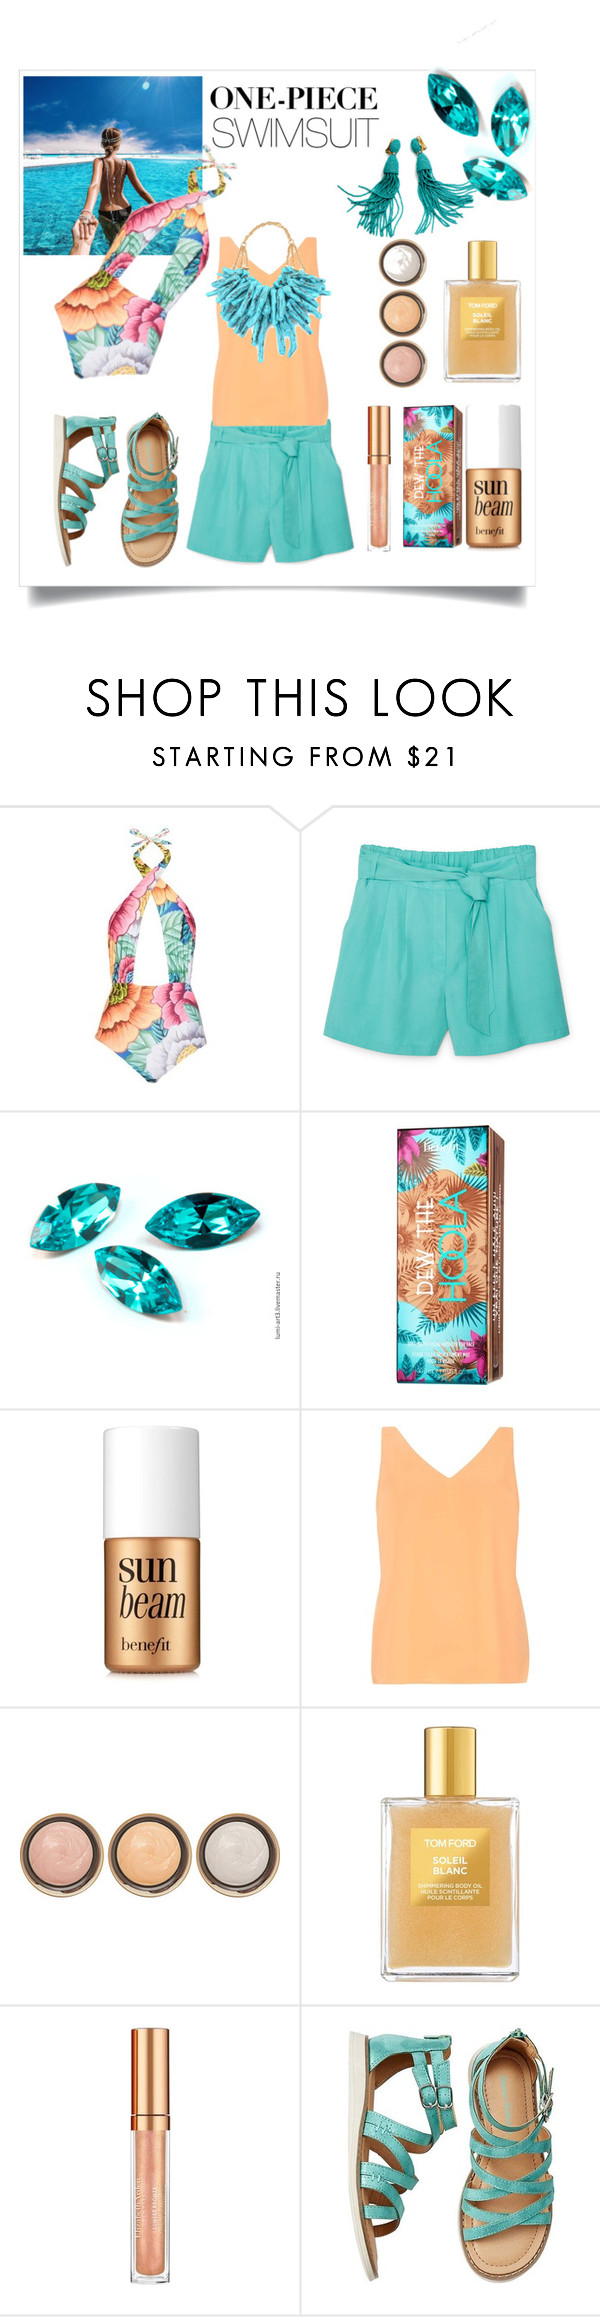 """""""One-piece swimsuit. Summer wave."""" by elena-viola-1 ❤ liked on Polyvore featuring Mara Hoffman, MANGO, Hoola, Benefit, Dorothy Perkins, By Terry, Tom Ford and Elizabeth Arden"""